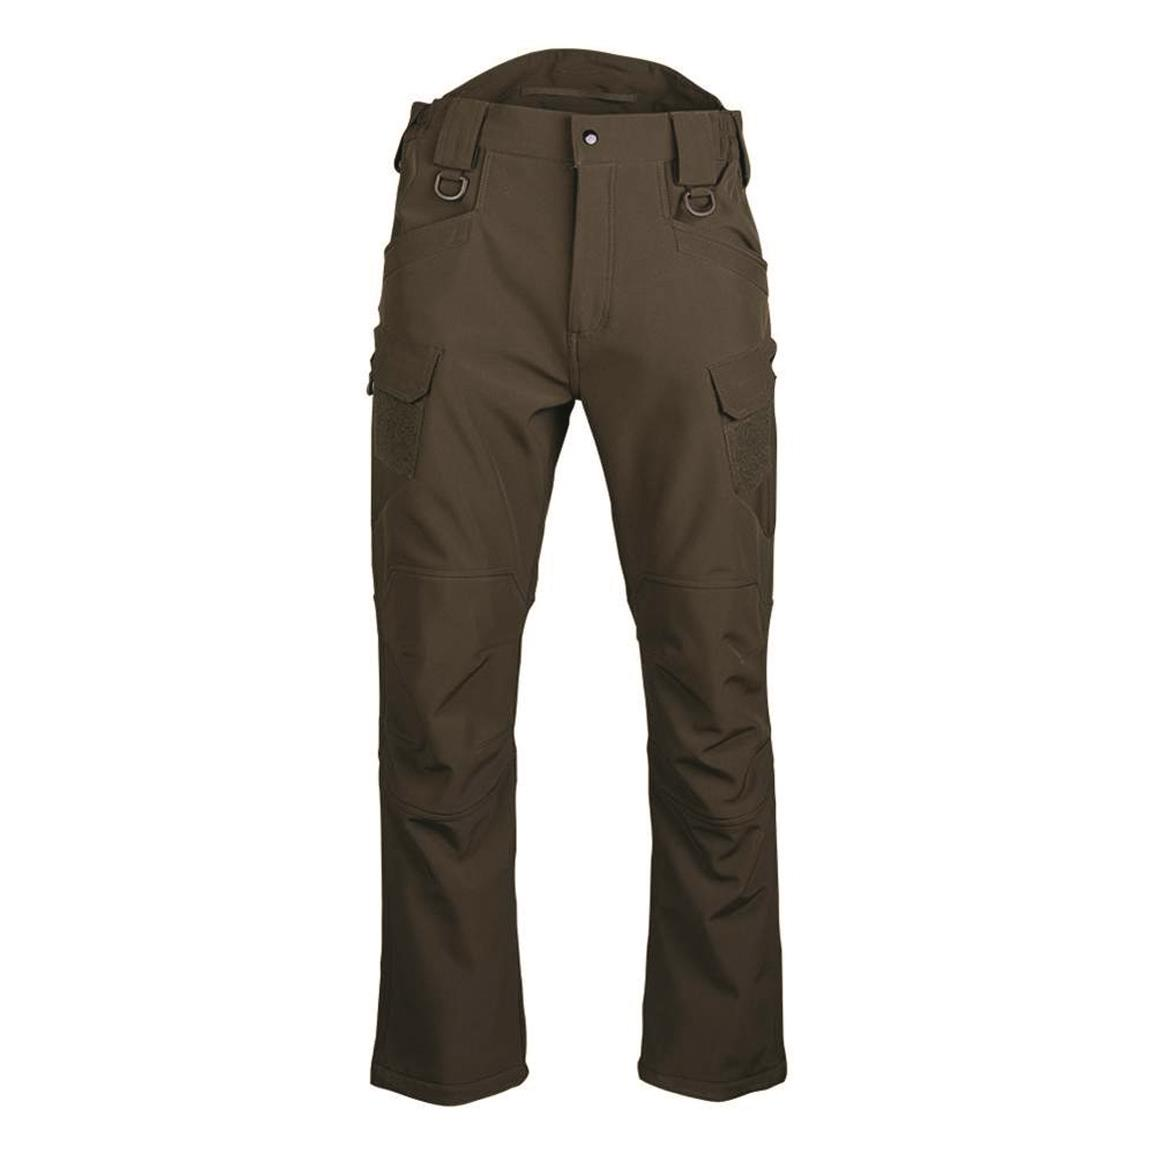 Mil-Tec Soft Shell 3-layer Pants, Olive Drab